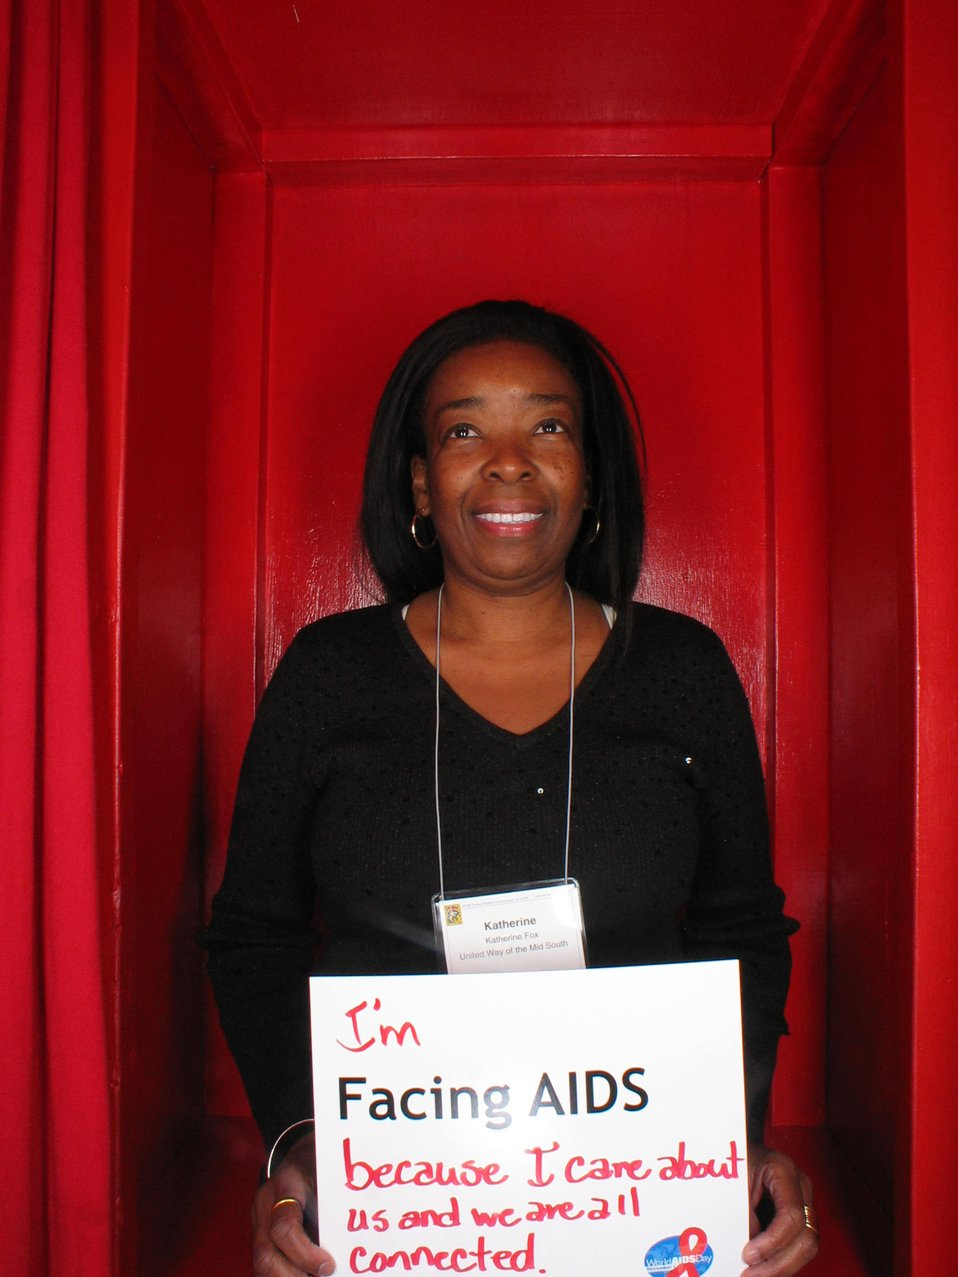 I'm Facing AIDS because I care about us and we are all connected.